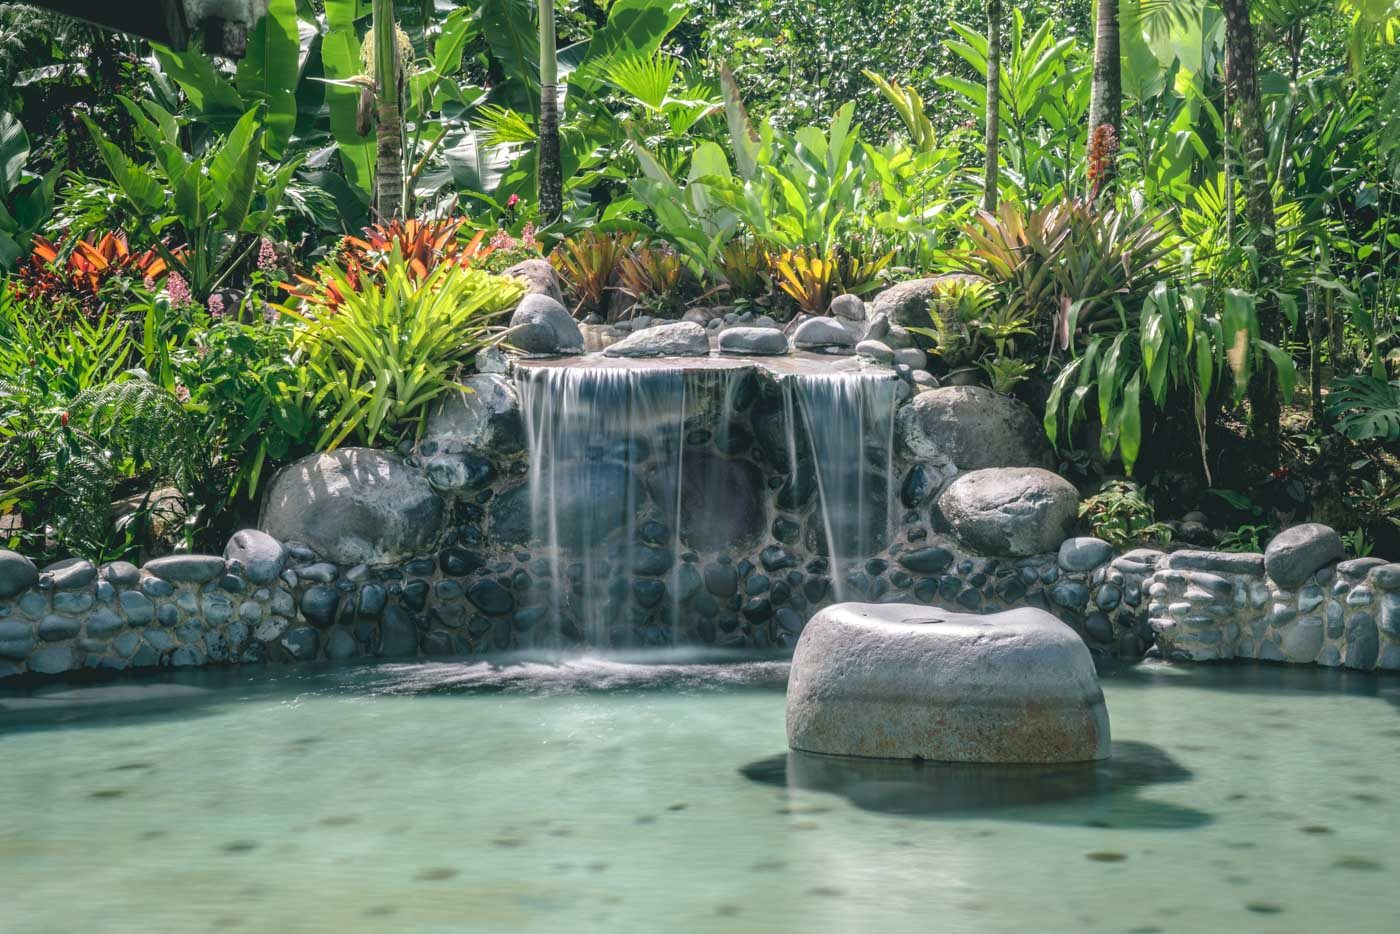 A hot springs in Costa Rica, Arenal Springs Resort & Spa